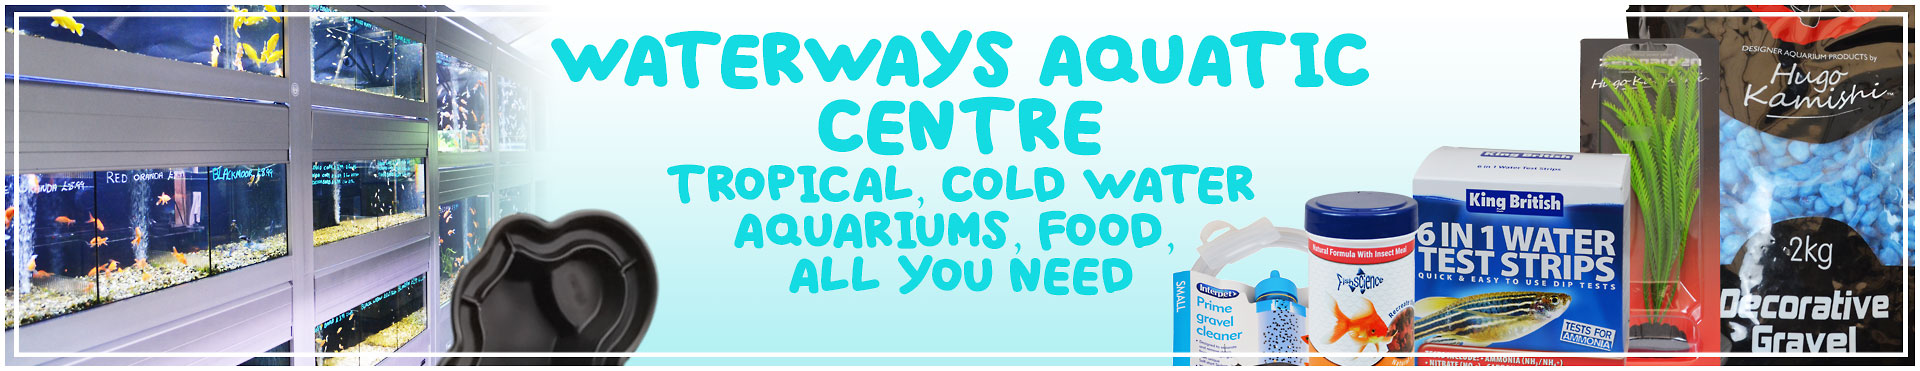 Waterways Aquatic Centre